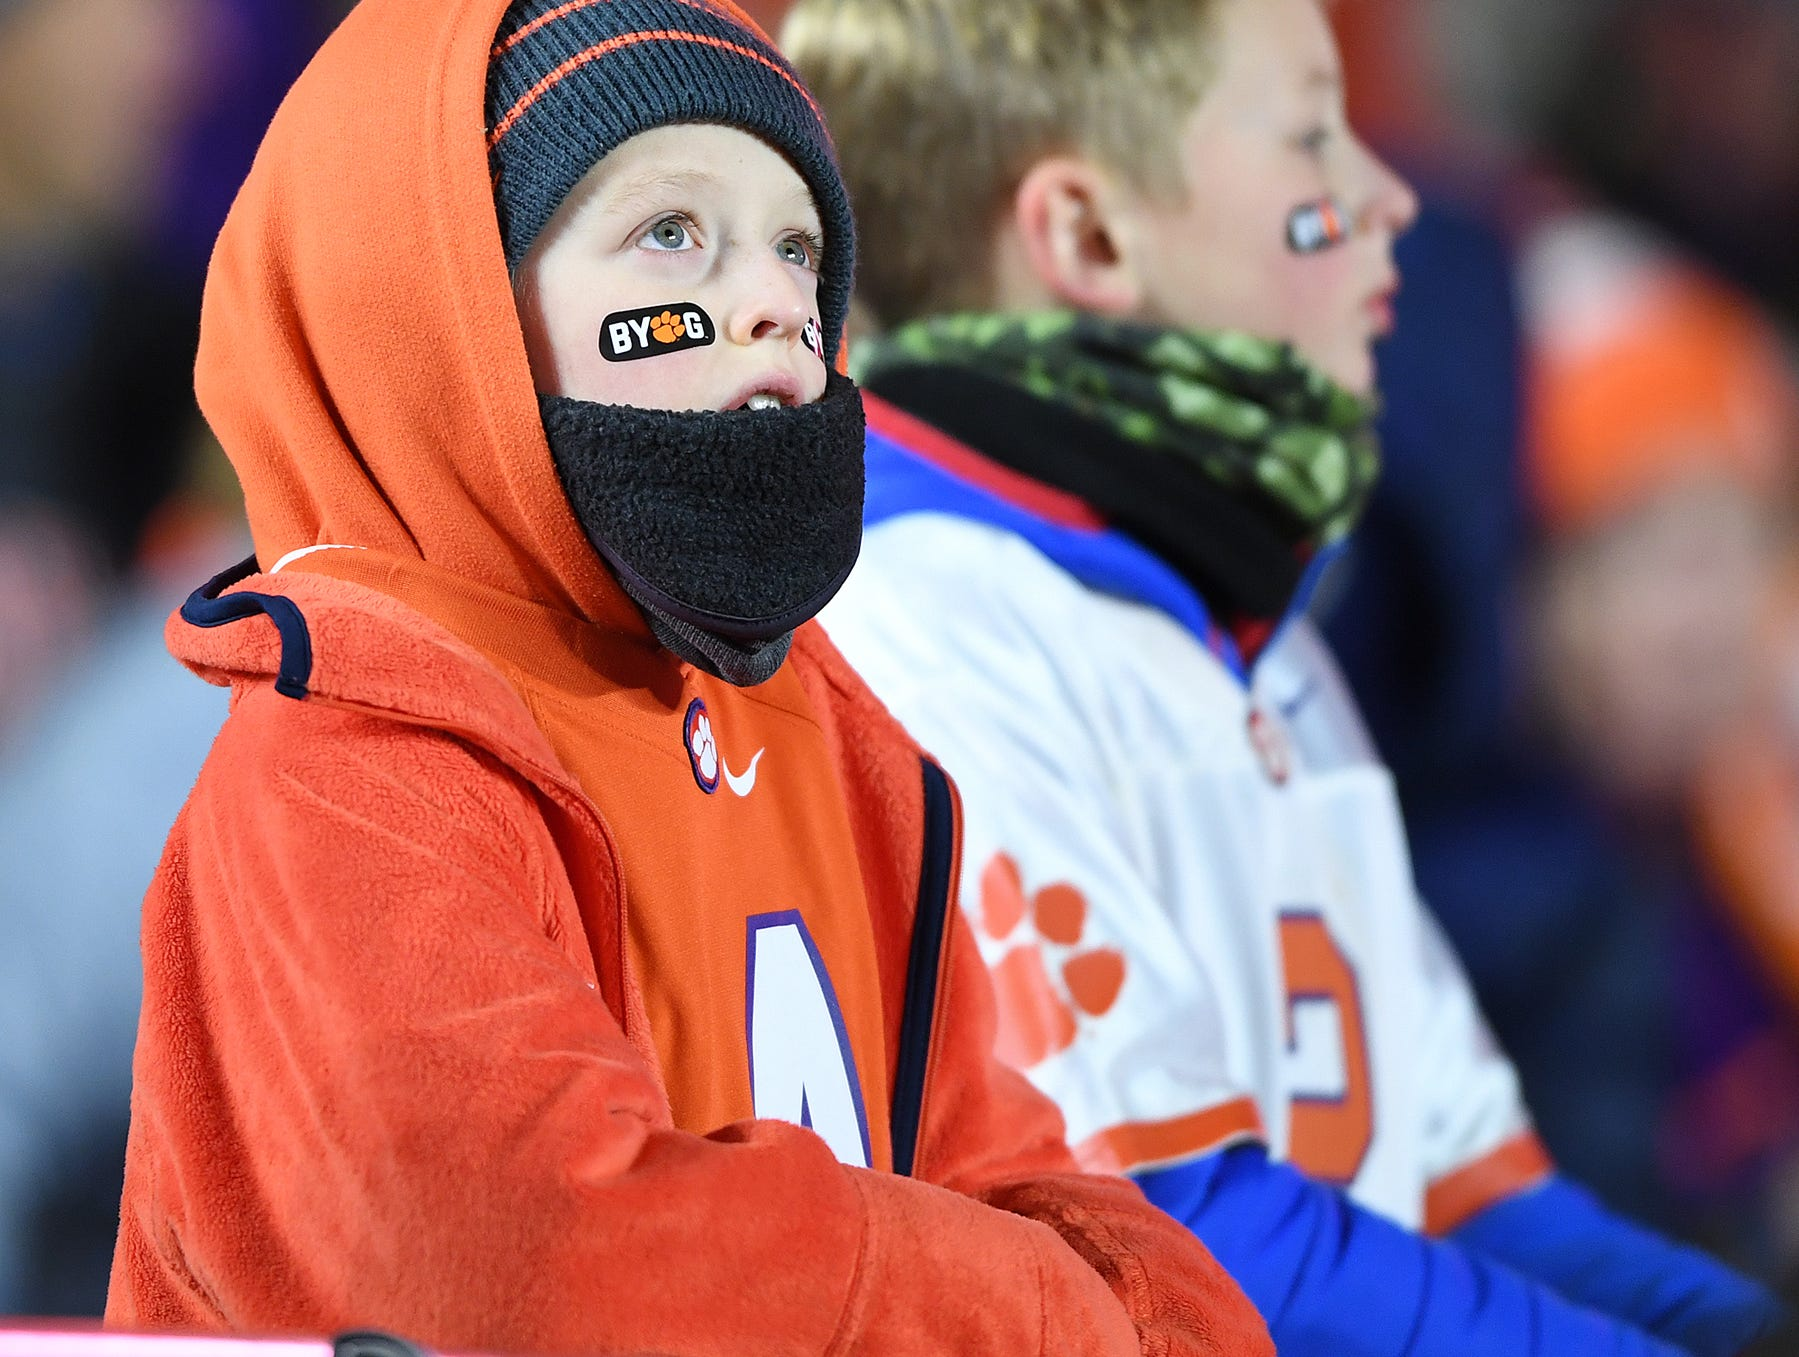 Clemson fan's bundle up from the cold during pregame at Boston College's Alumni Stadium in Chestnut Hill, MA. Saturday, November 10, 2018.